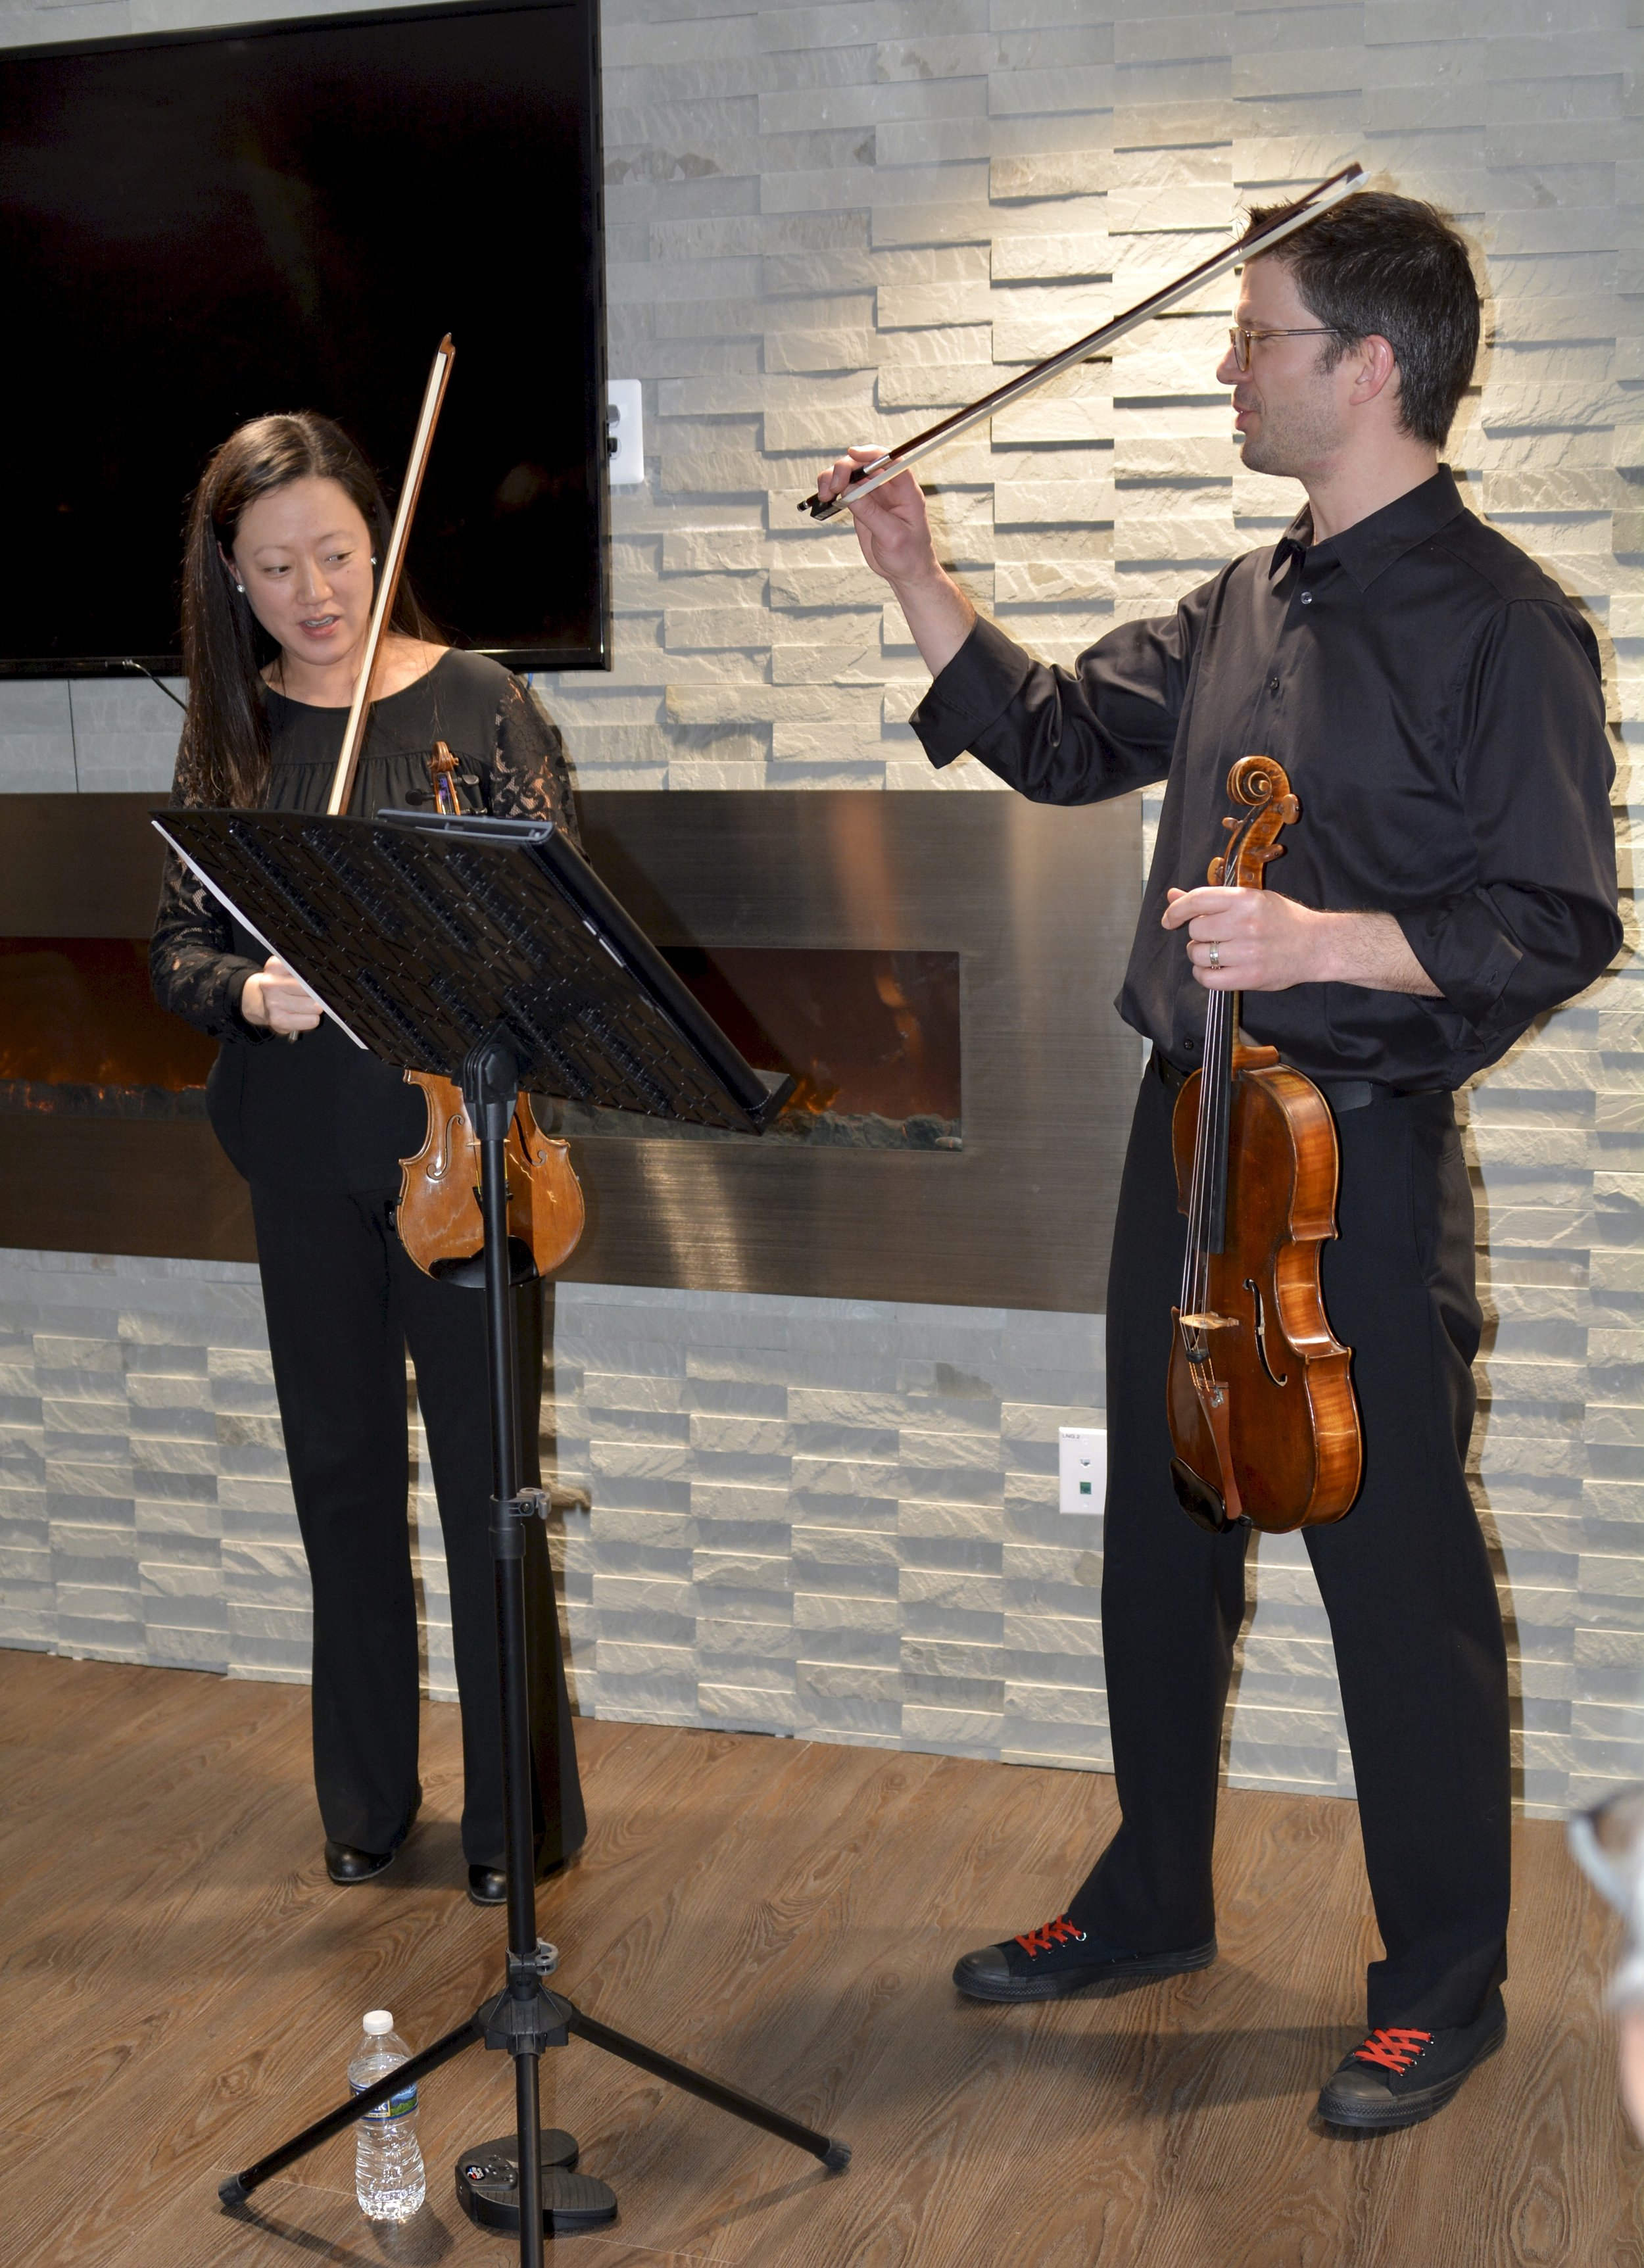 Chaerim and Derek Smith, Chamber Dance Project, violinist and violist